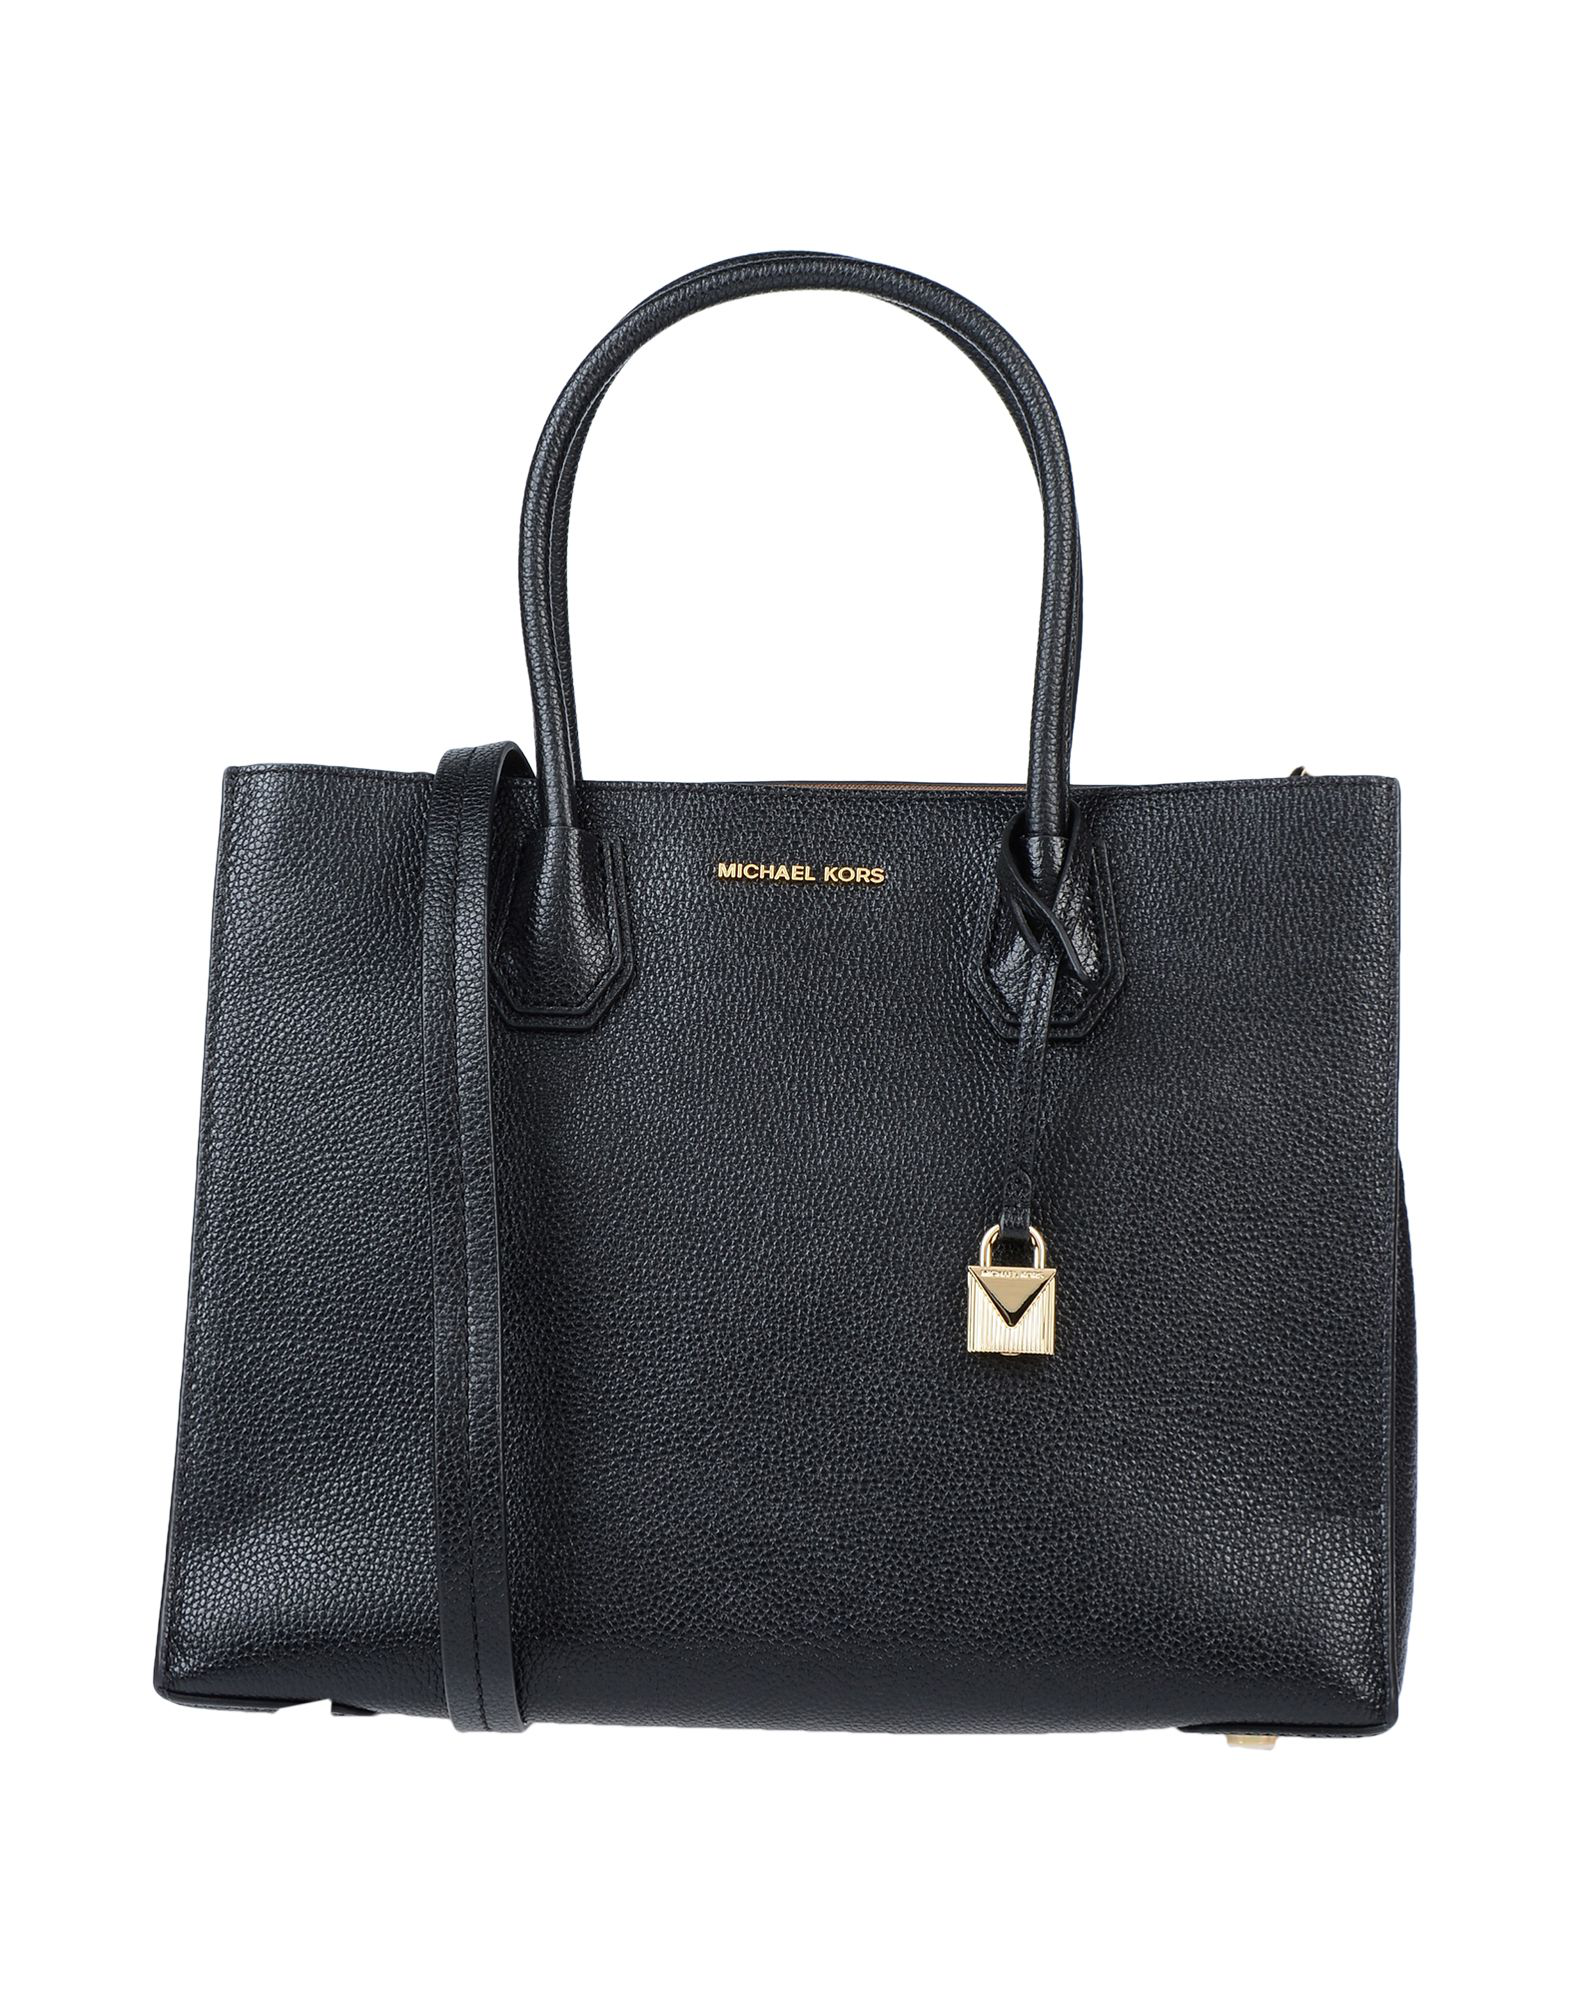 68605bacc7 Michael Kors Bags From Turkey | Stanford Center for Opportunity ...